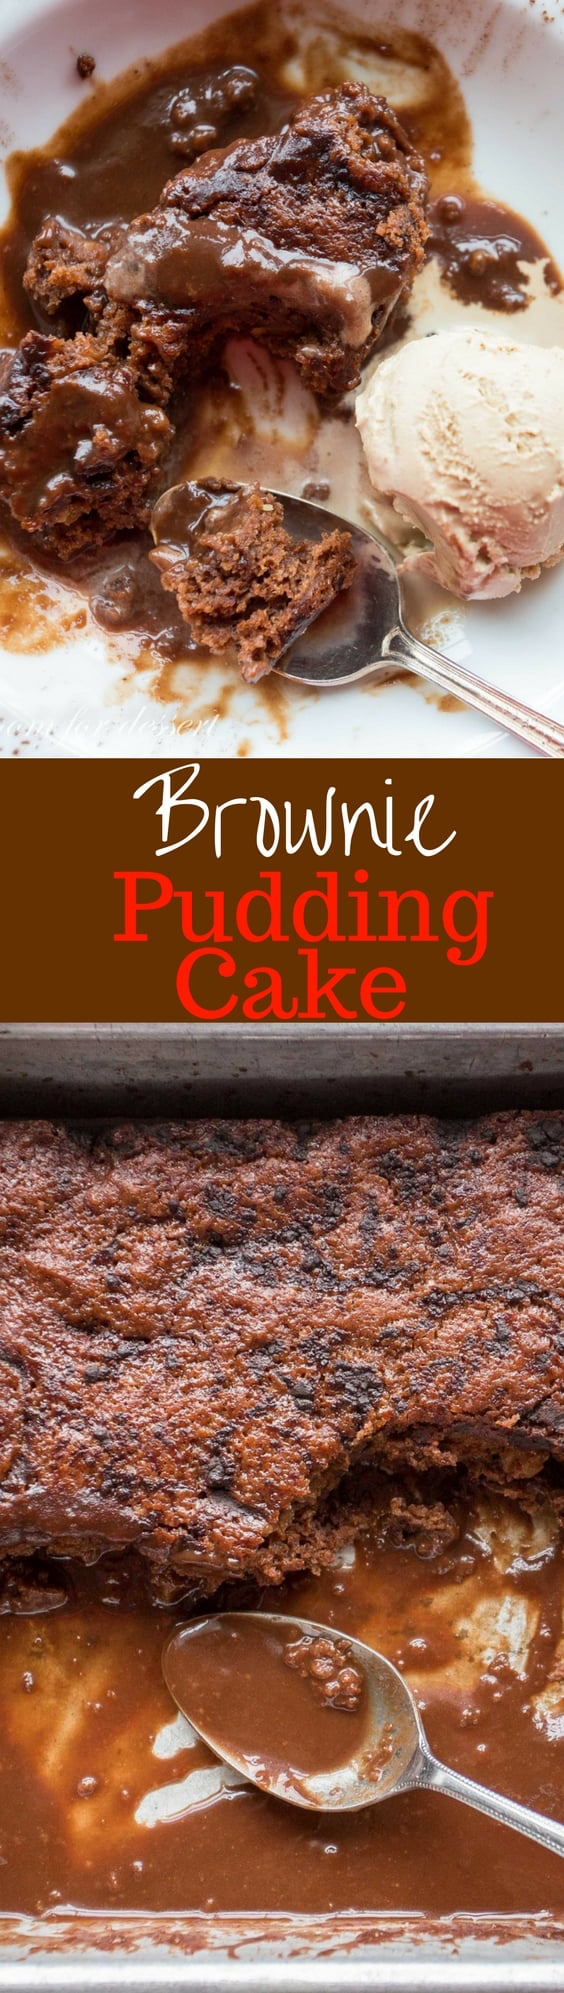 Chocolate brownies sitting on move yesteryear of a warm Chocolate Brownie Pudding Cake